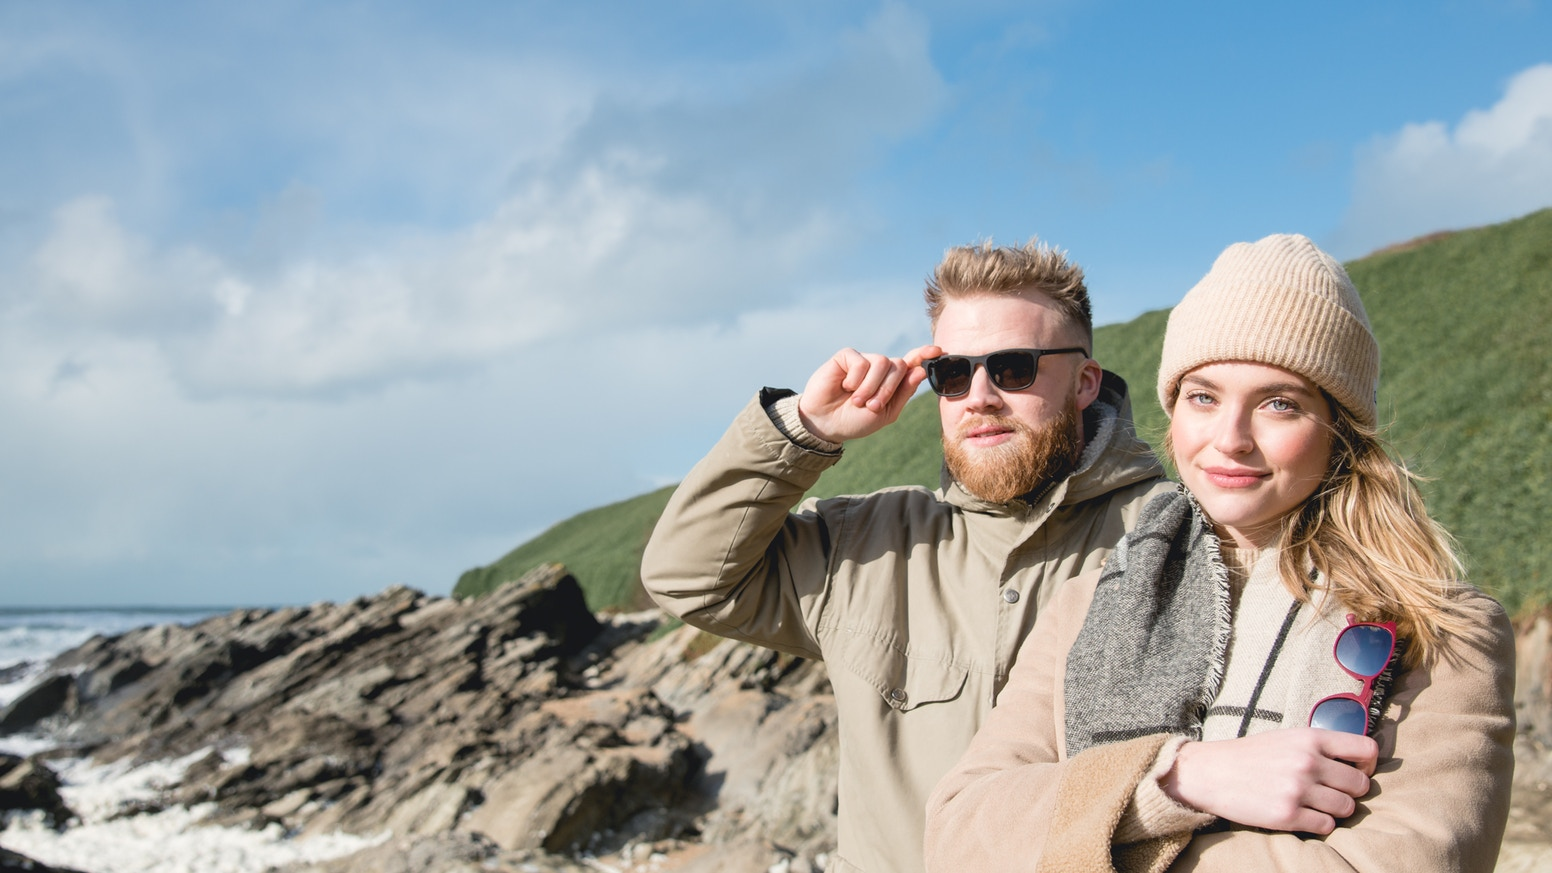 We create stylish, sustainable eyewear from rescued fishing nets and recycled plastic.